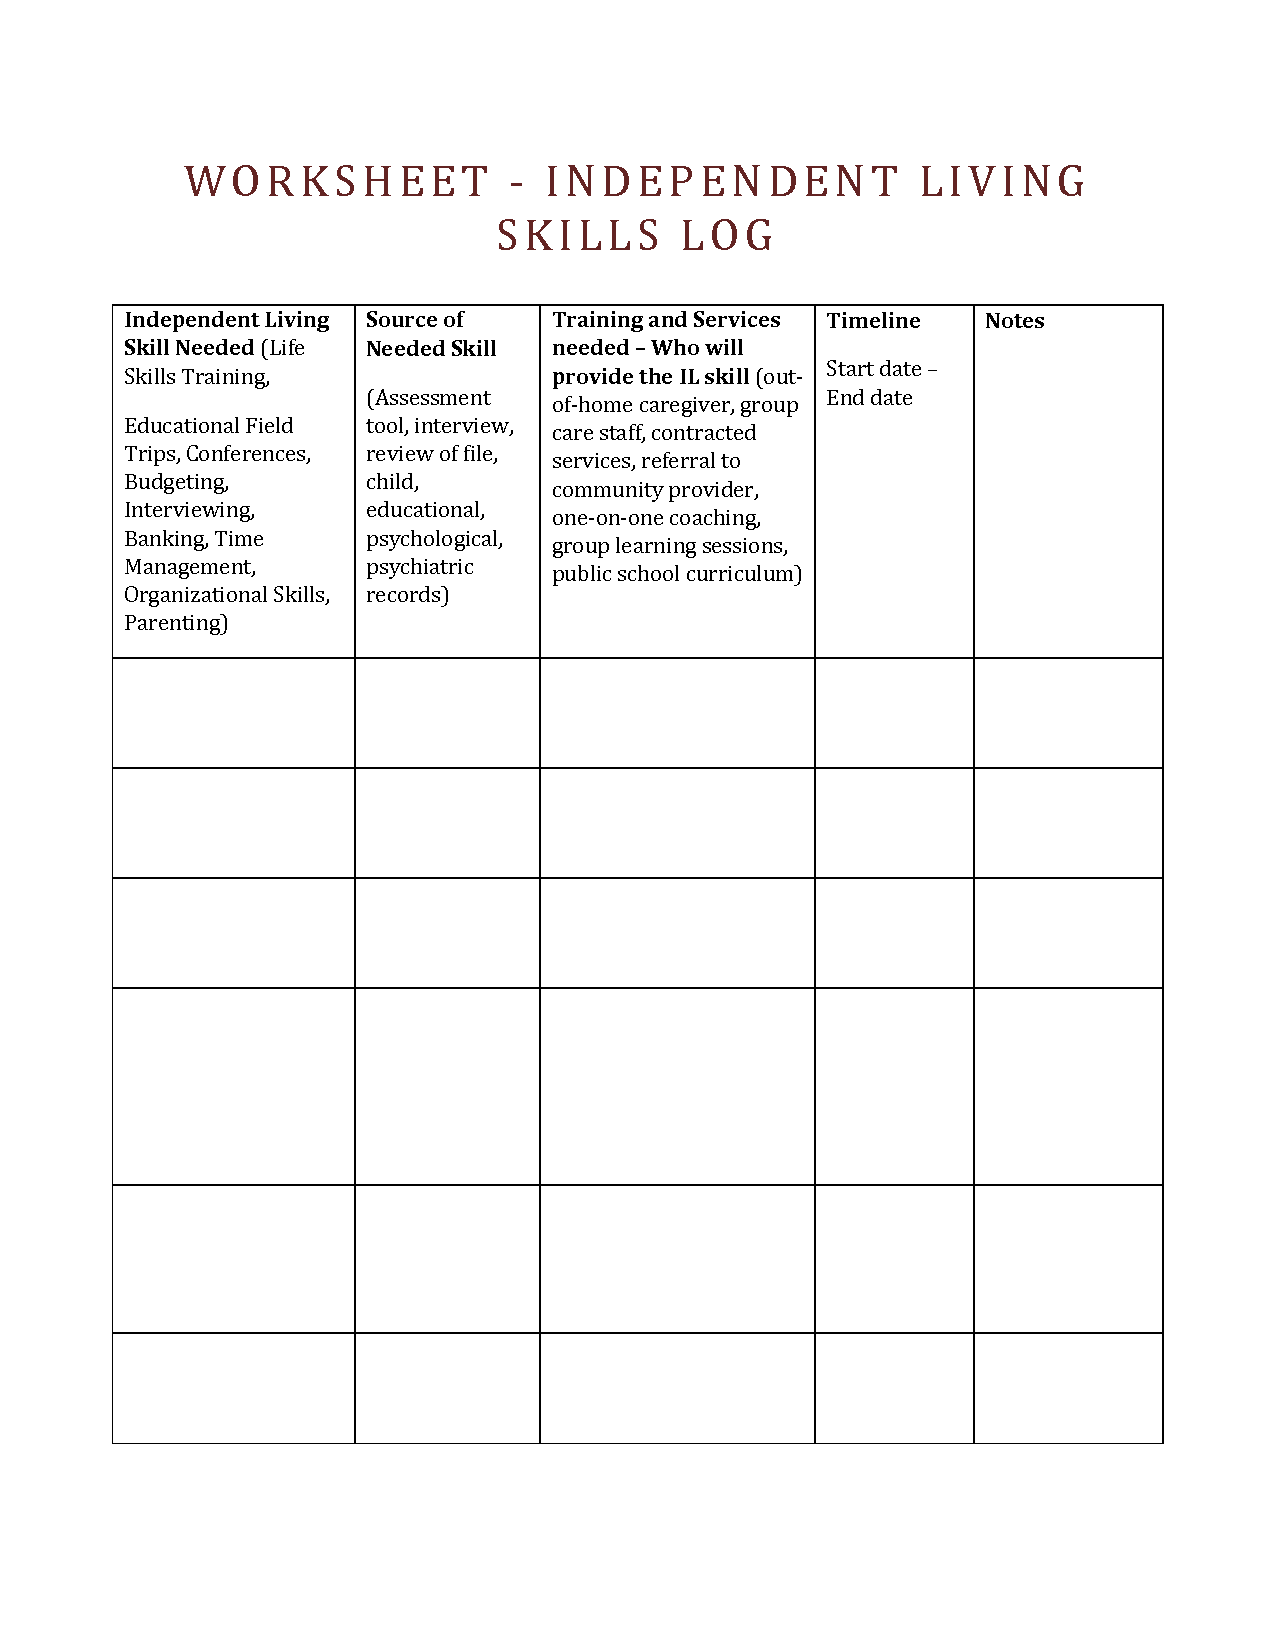 Worksheet Transition Adult Life